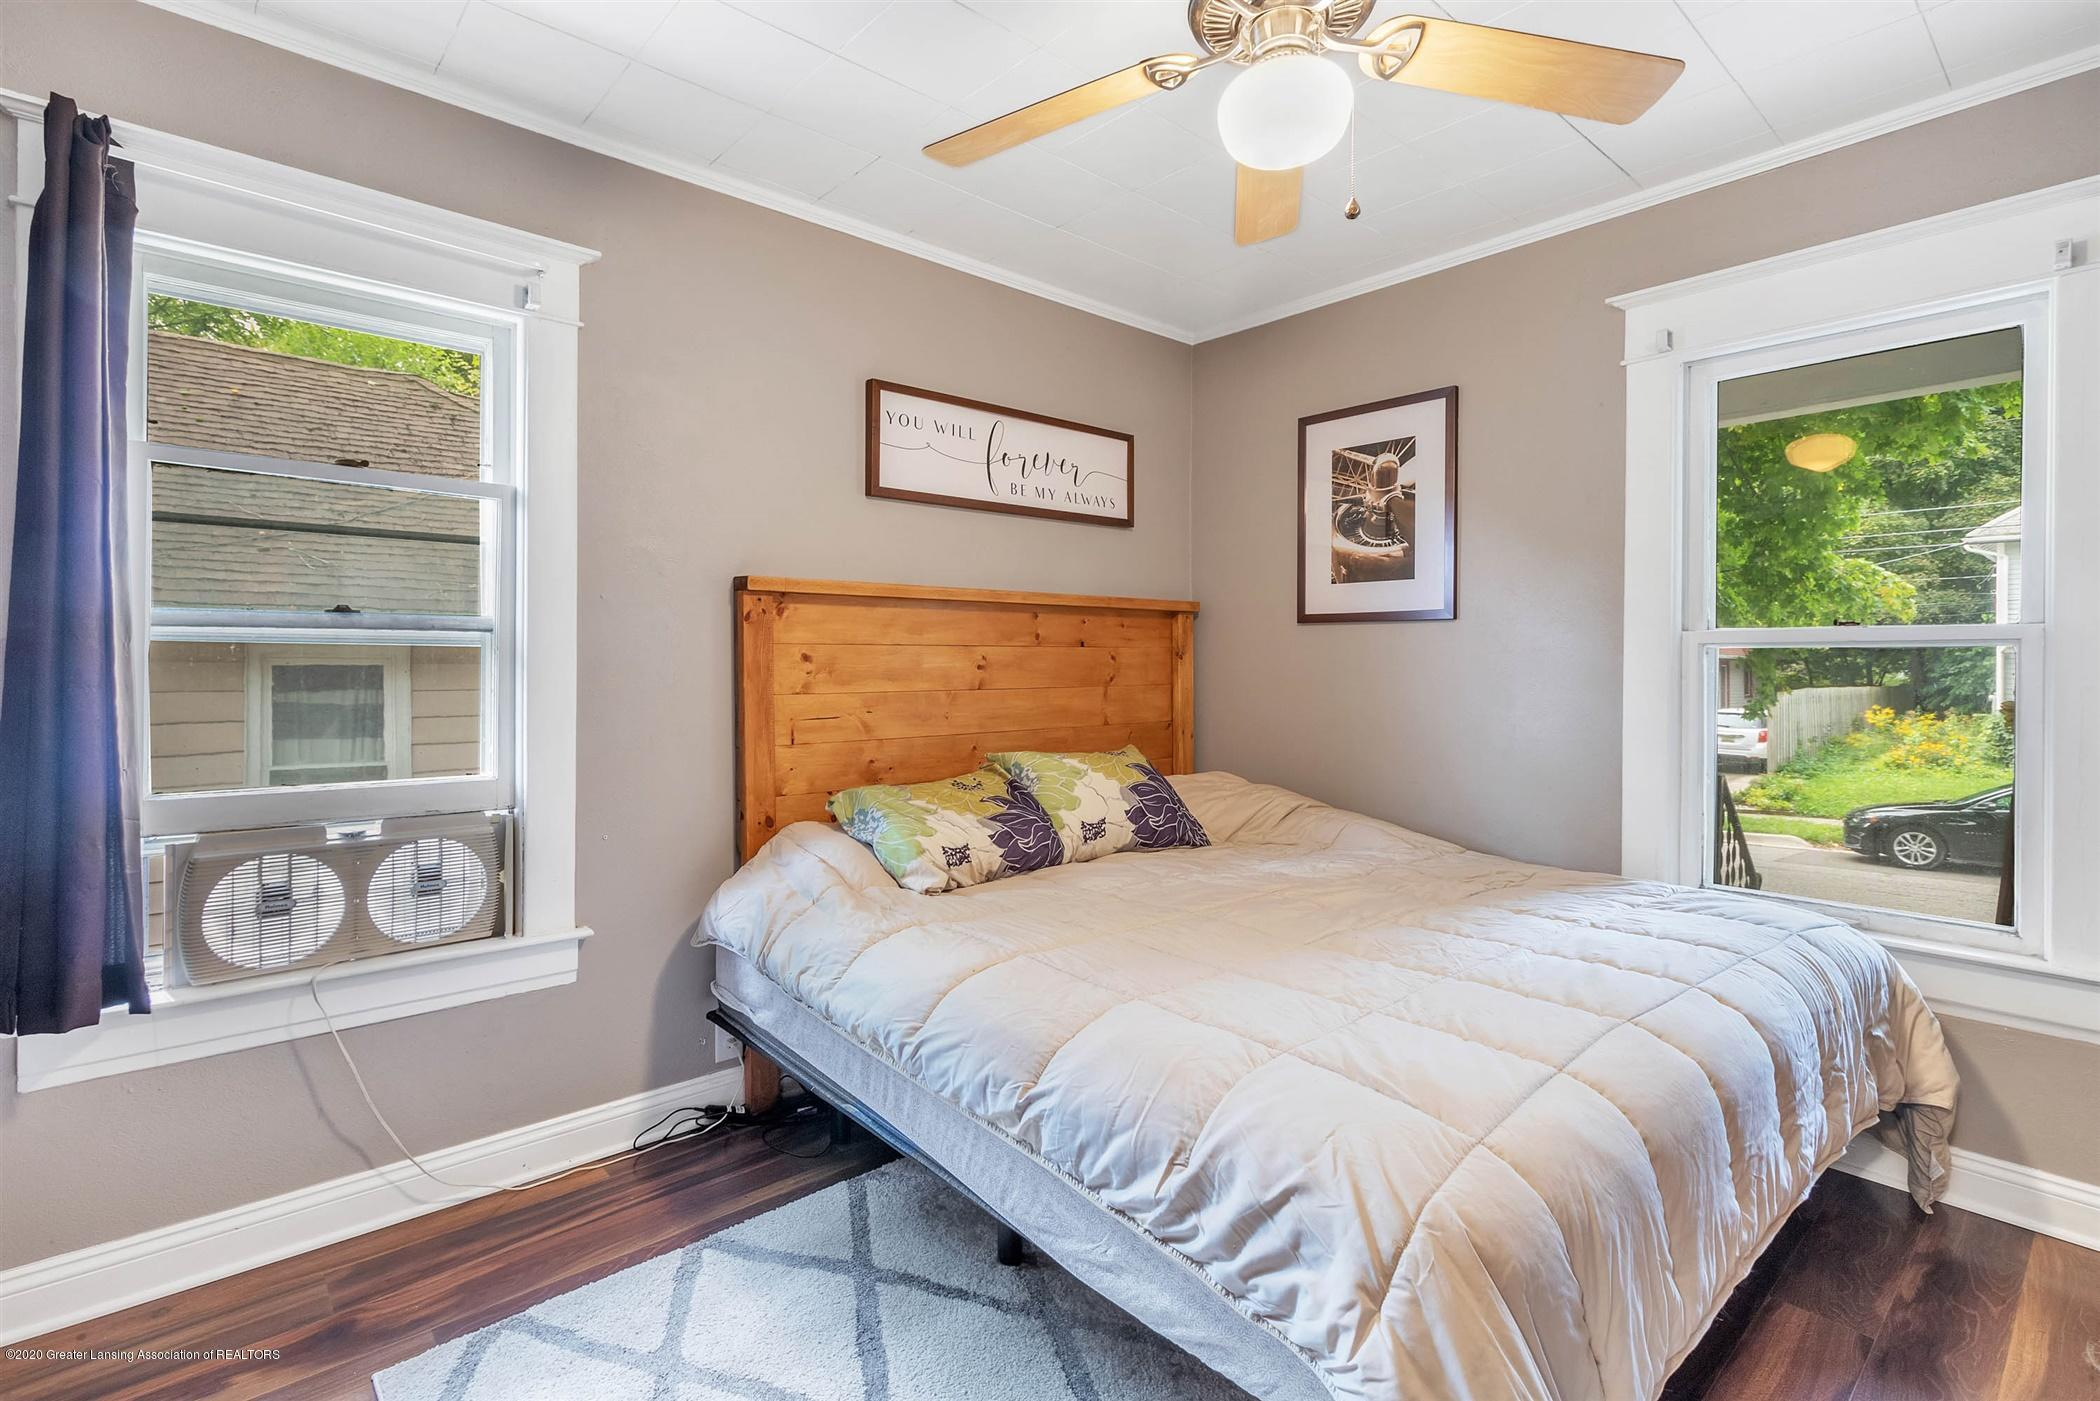 2127 Forest Ave - 23-2127 Forest Ave-WindowStill-Real - 23